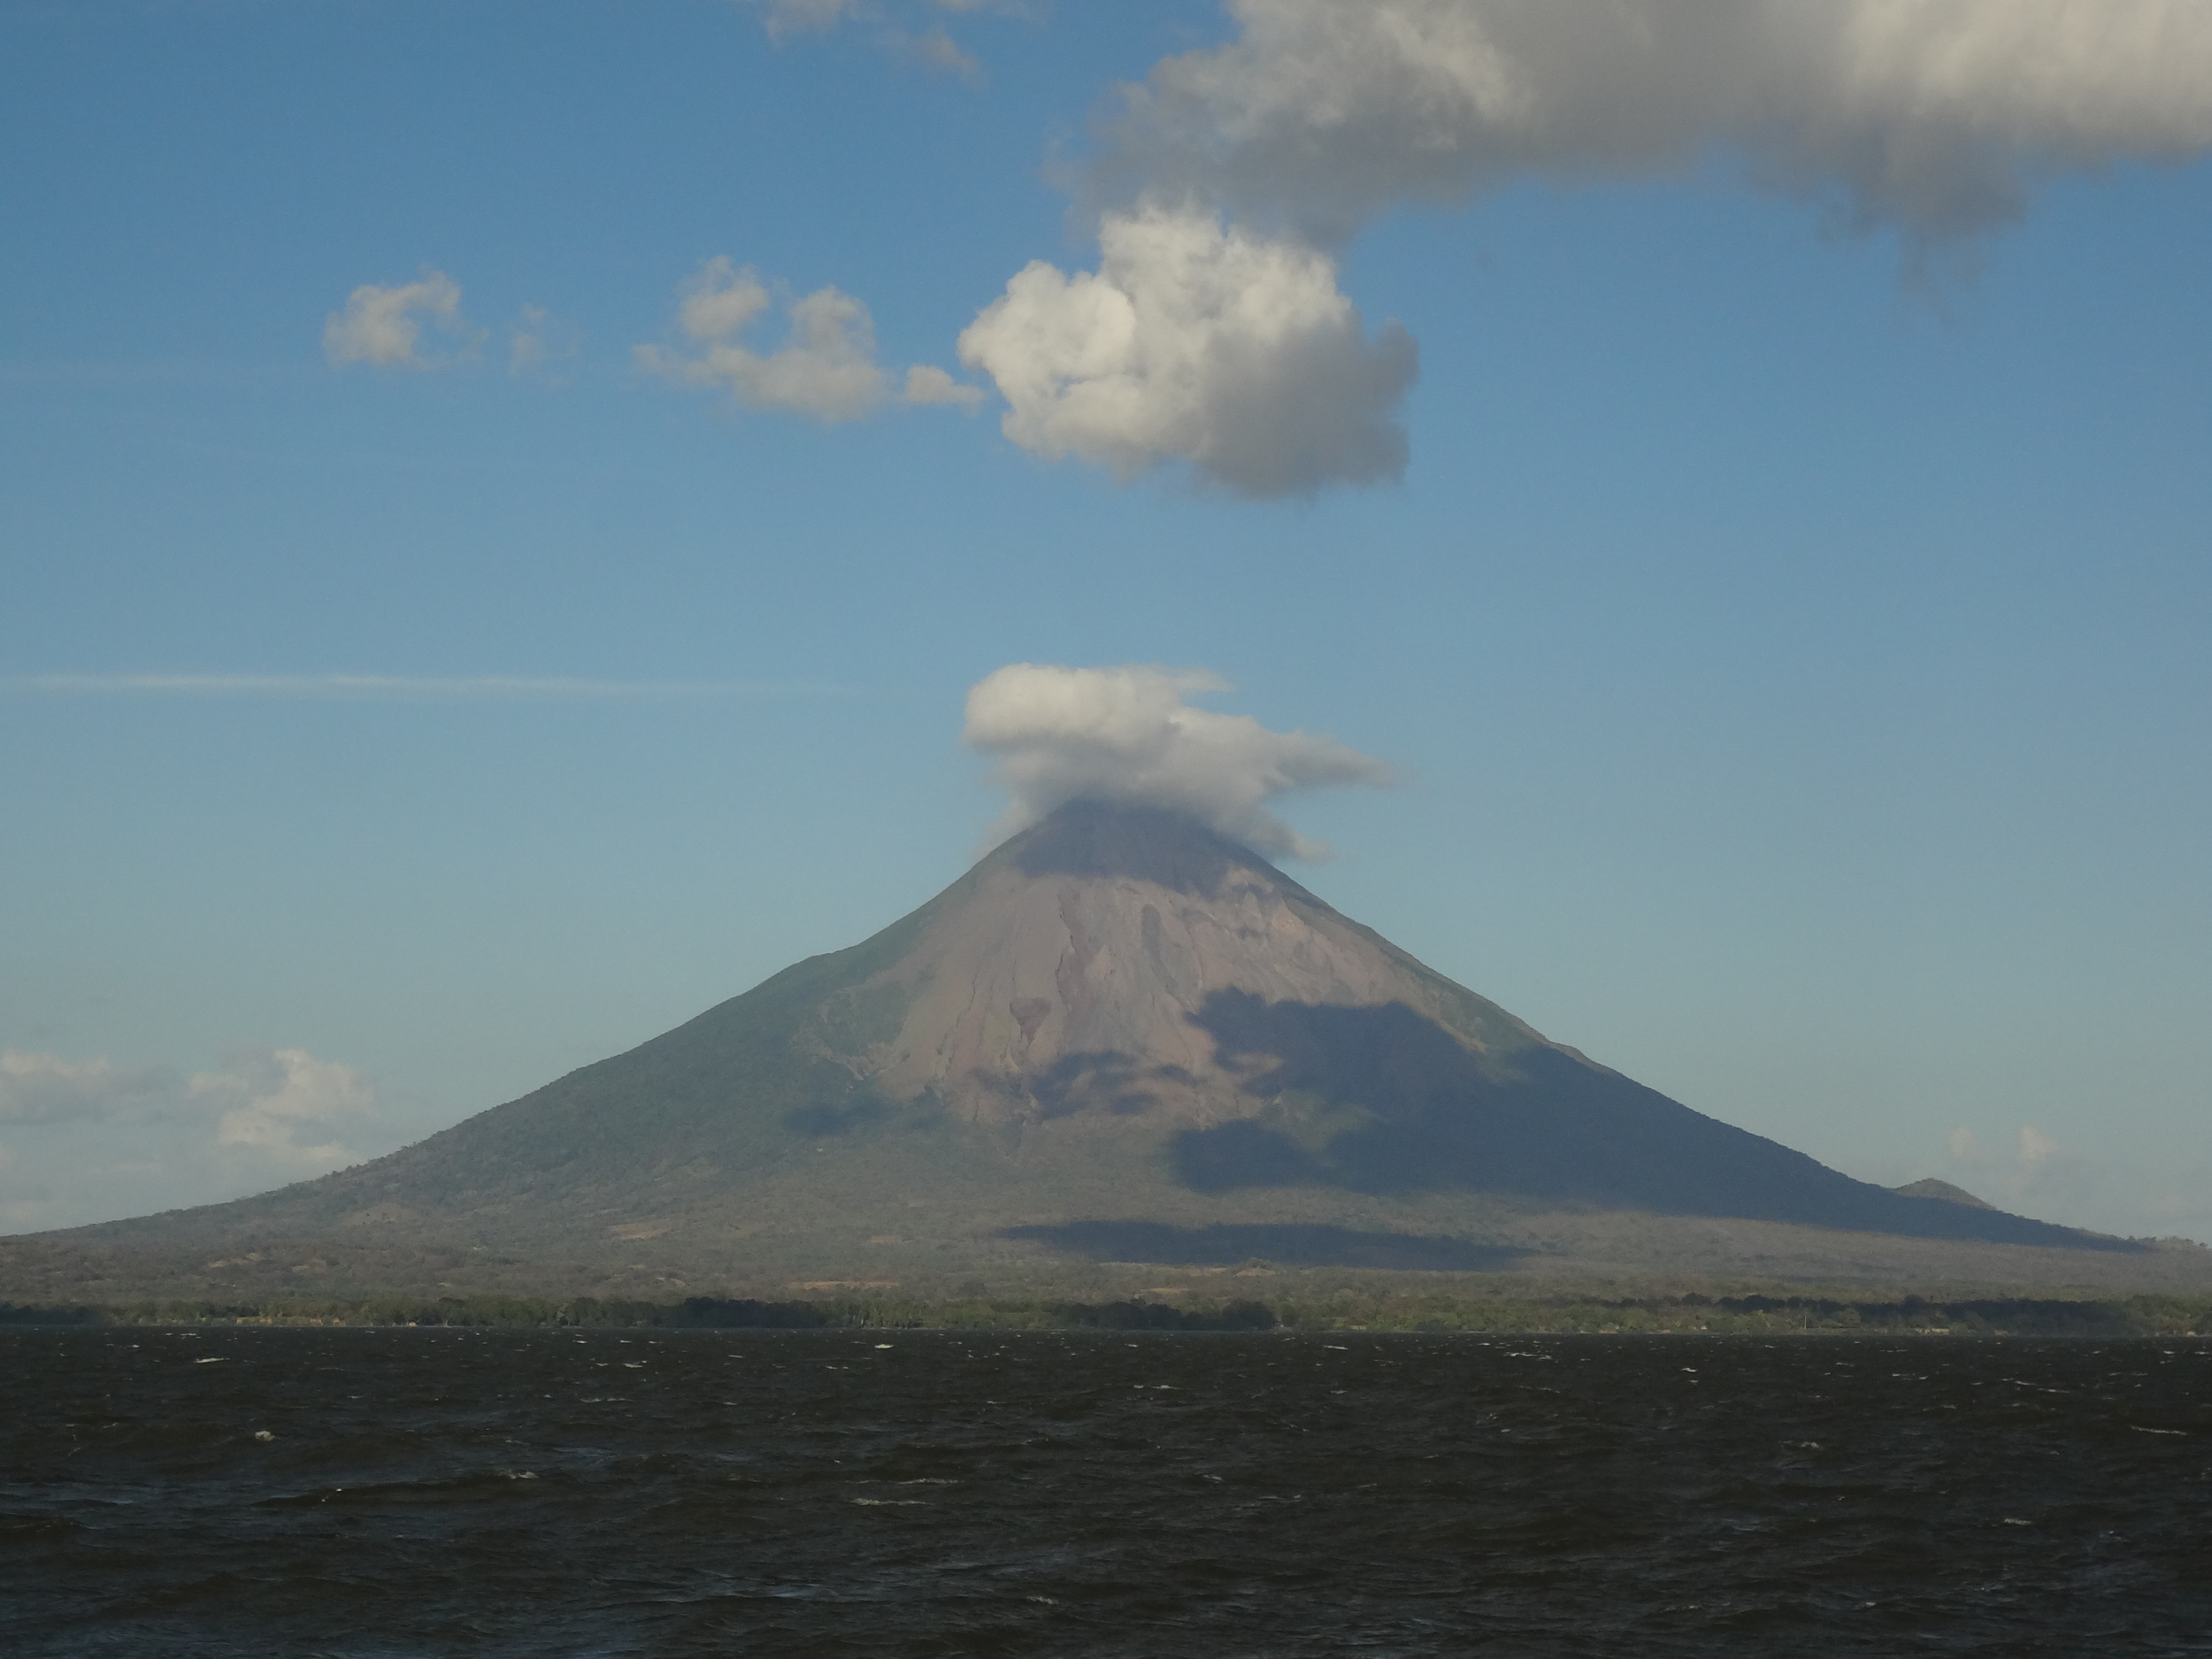 La Isla de Ometepe. Yes, that's a volcano in the middle of a massive lake.